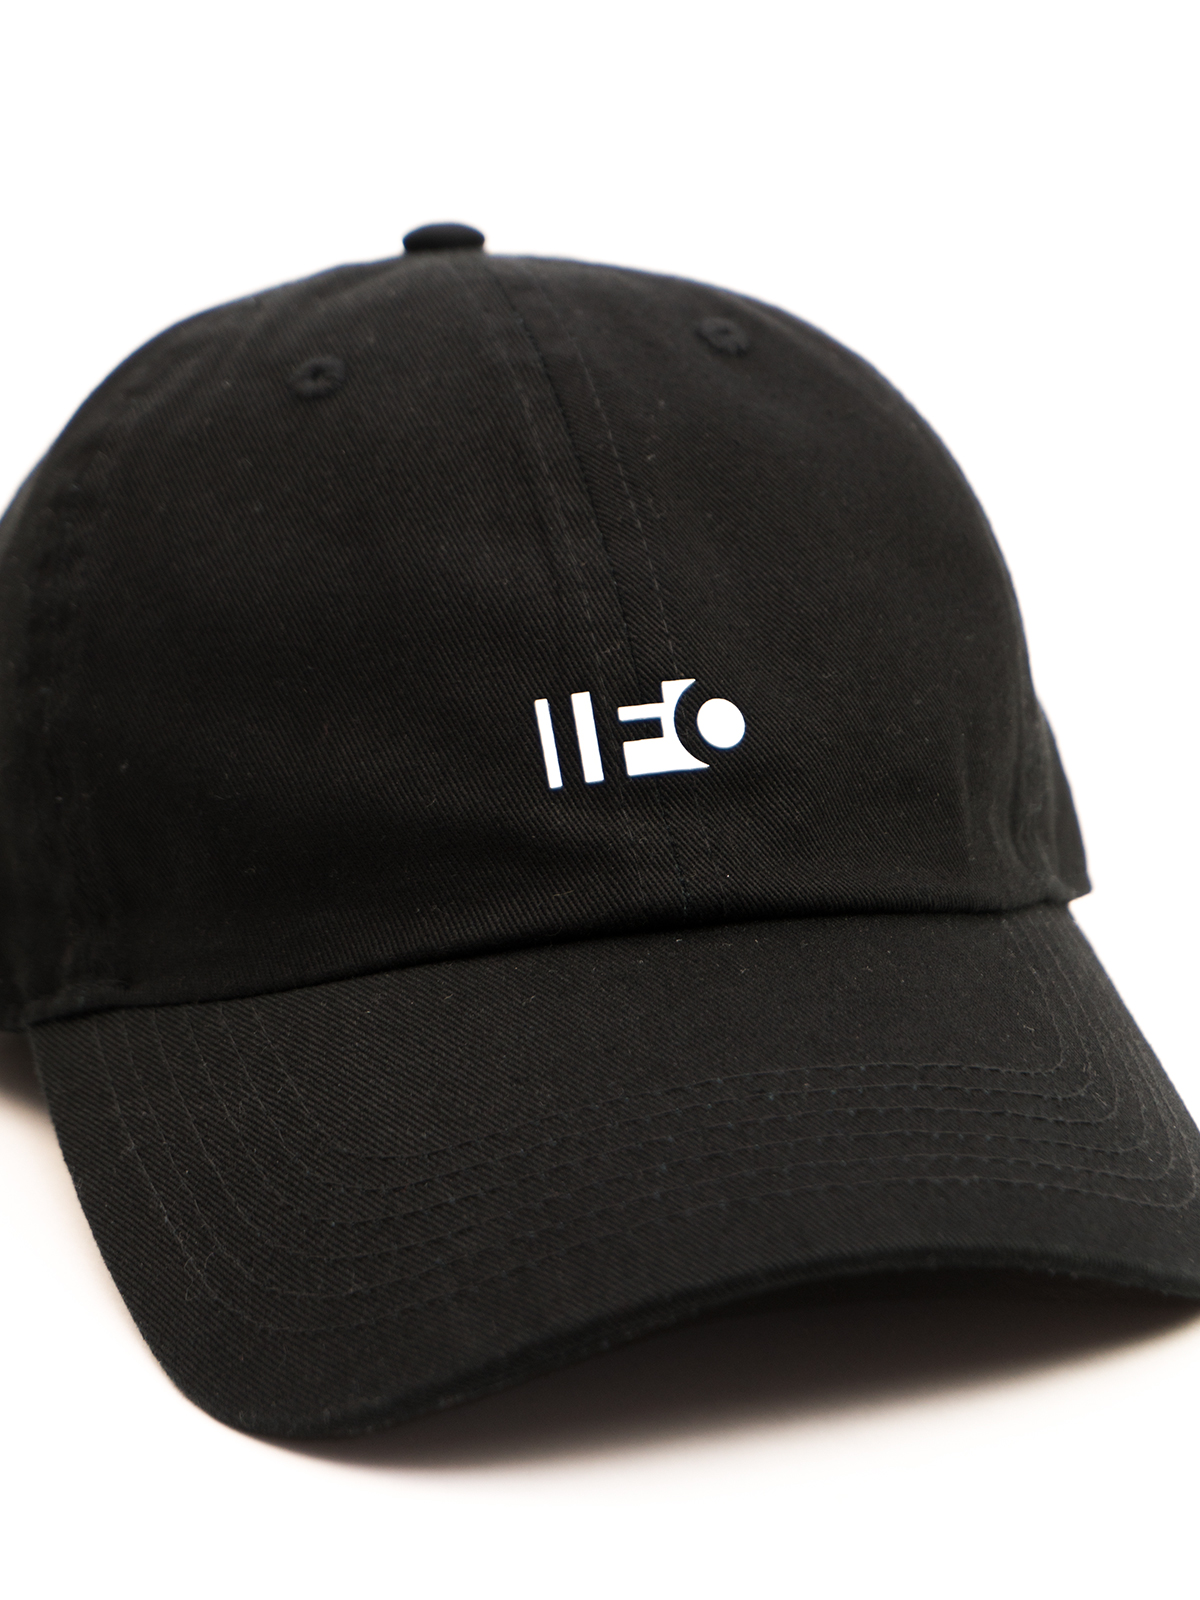 CUTOUT-LOGO-CHINO-HAT_Black_shop04